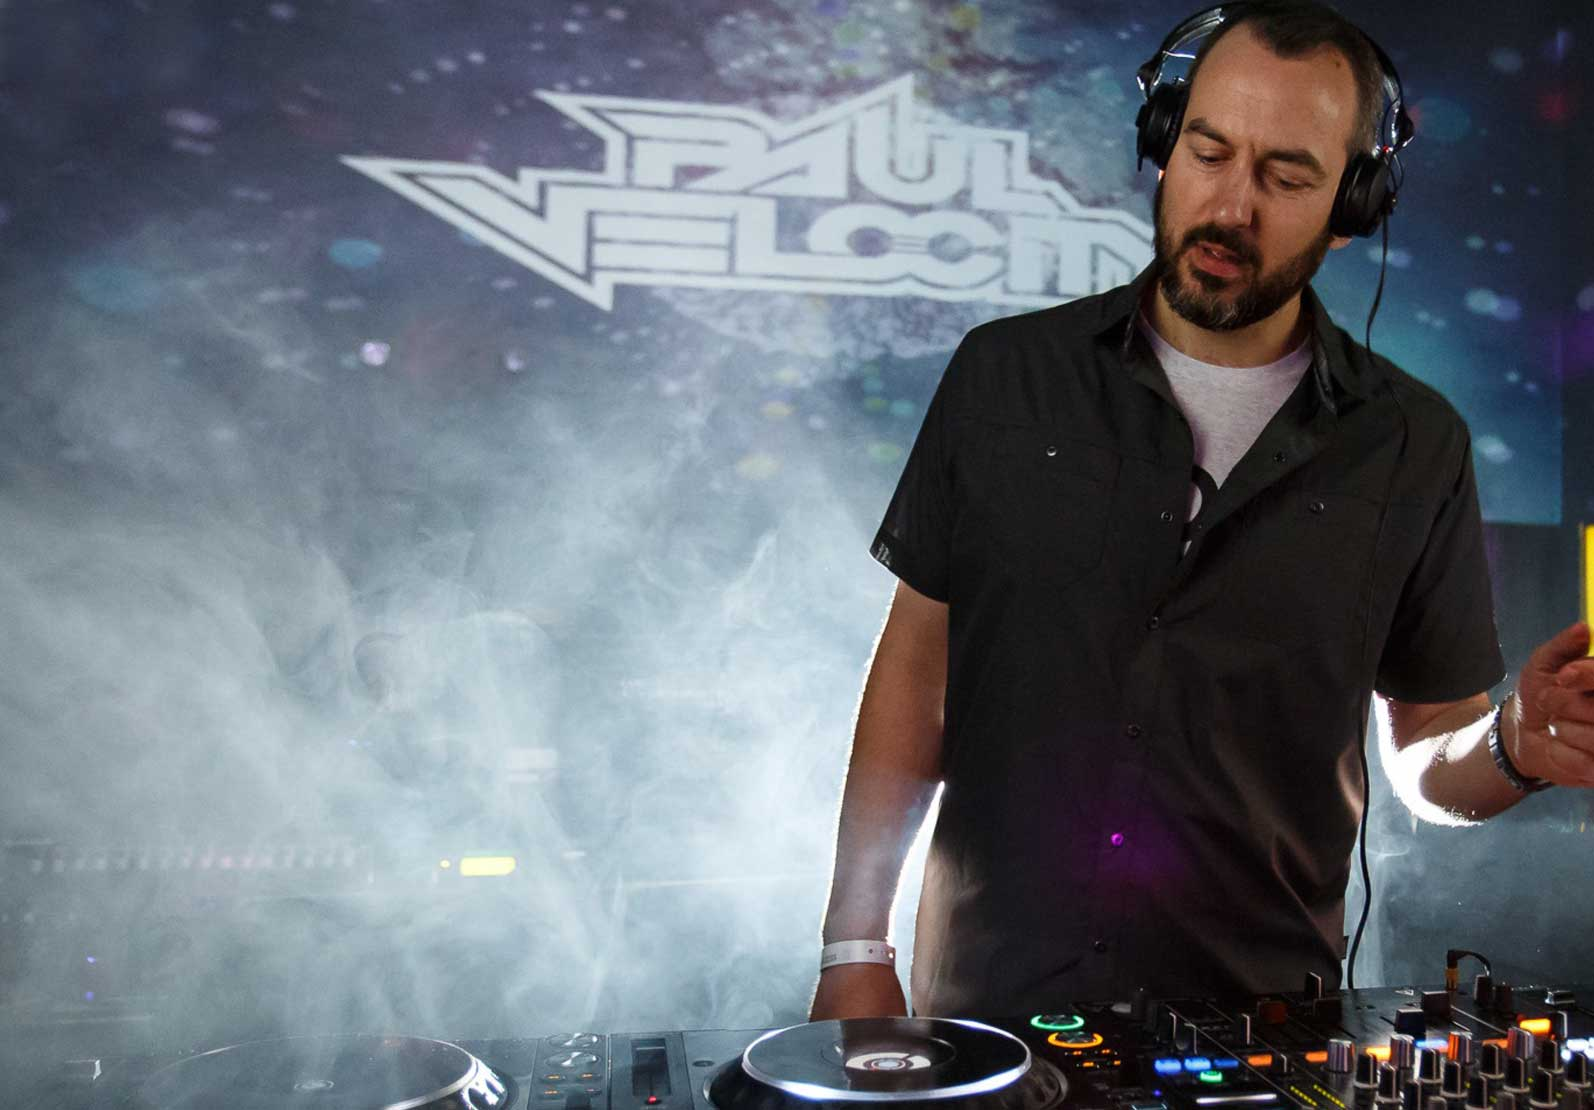 Image of DJ Paul Velocity in a nightclub behind the decks